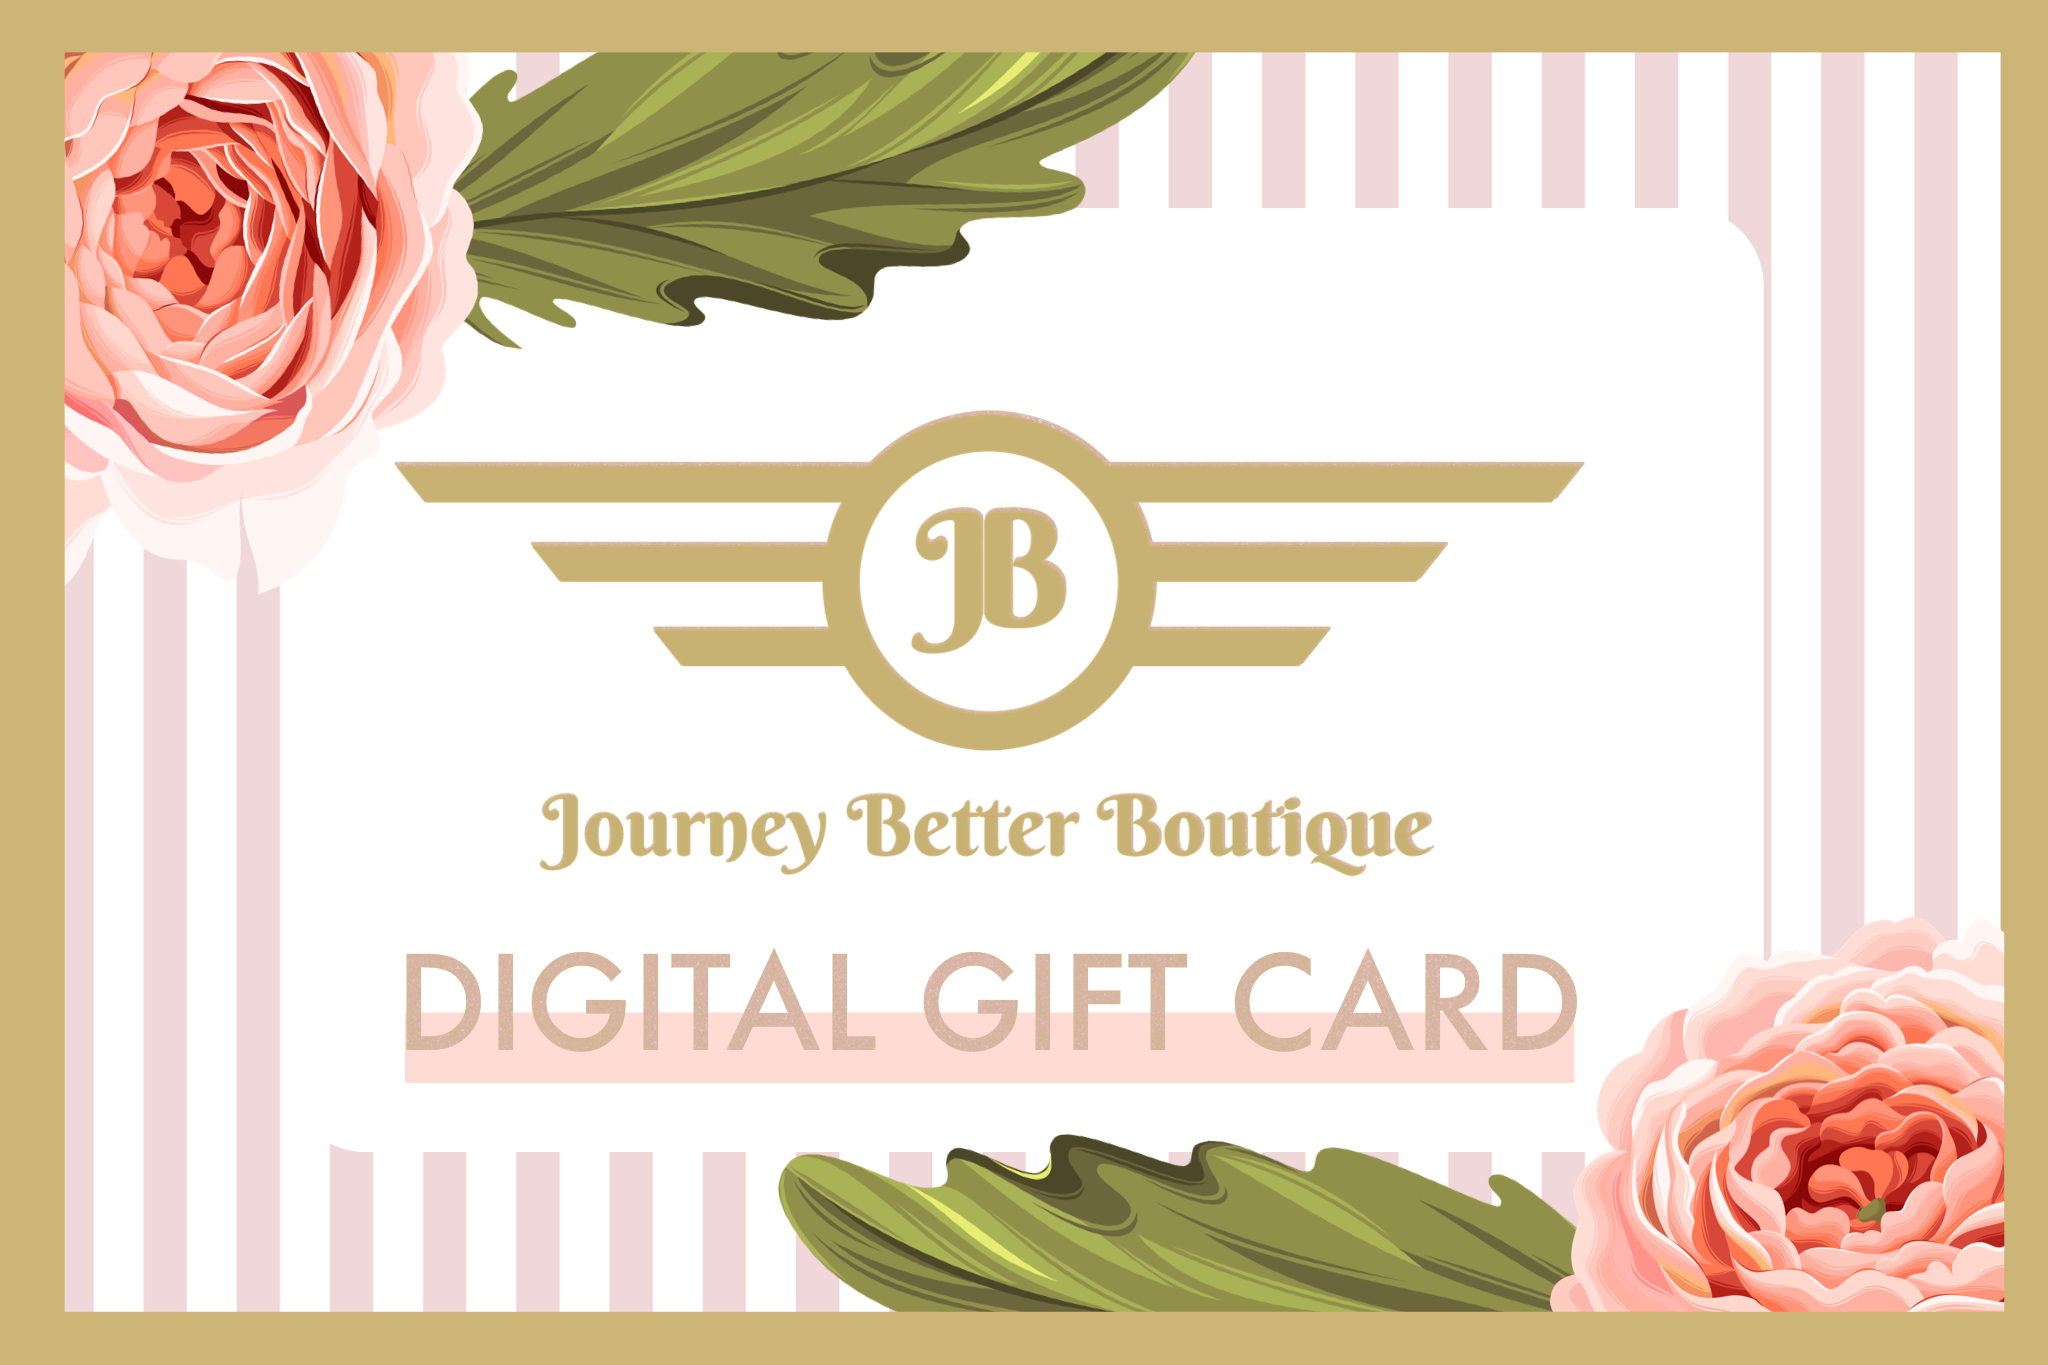 Journey Better Boutique Gift Card